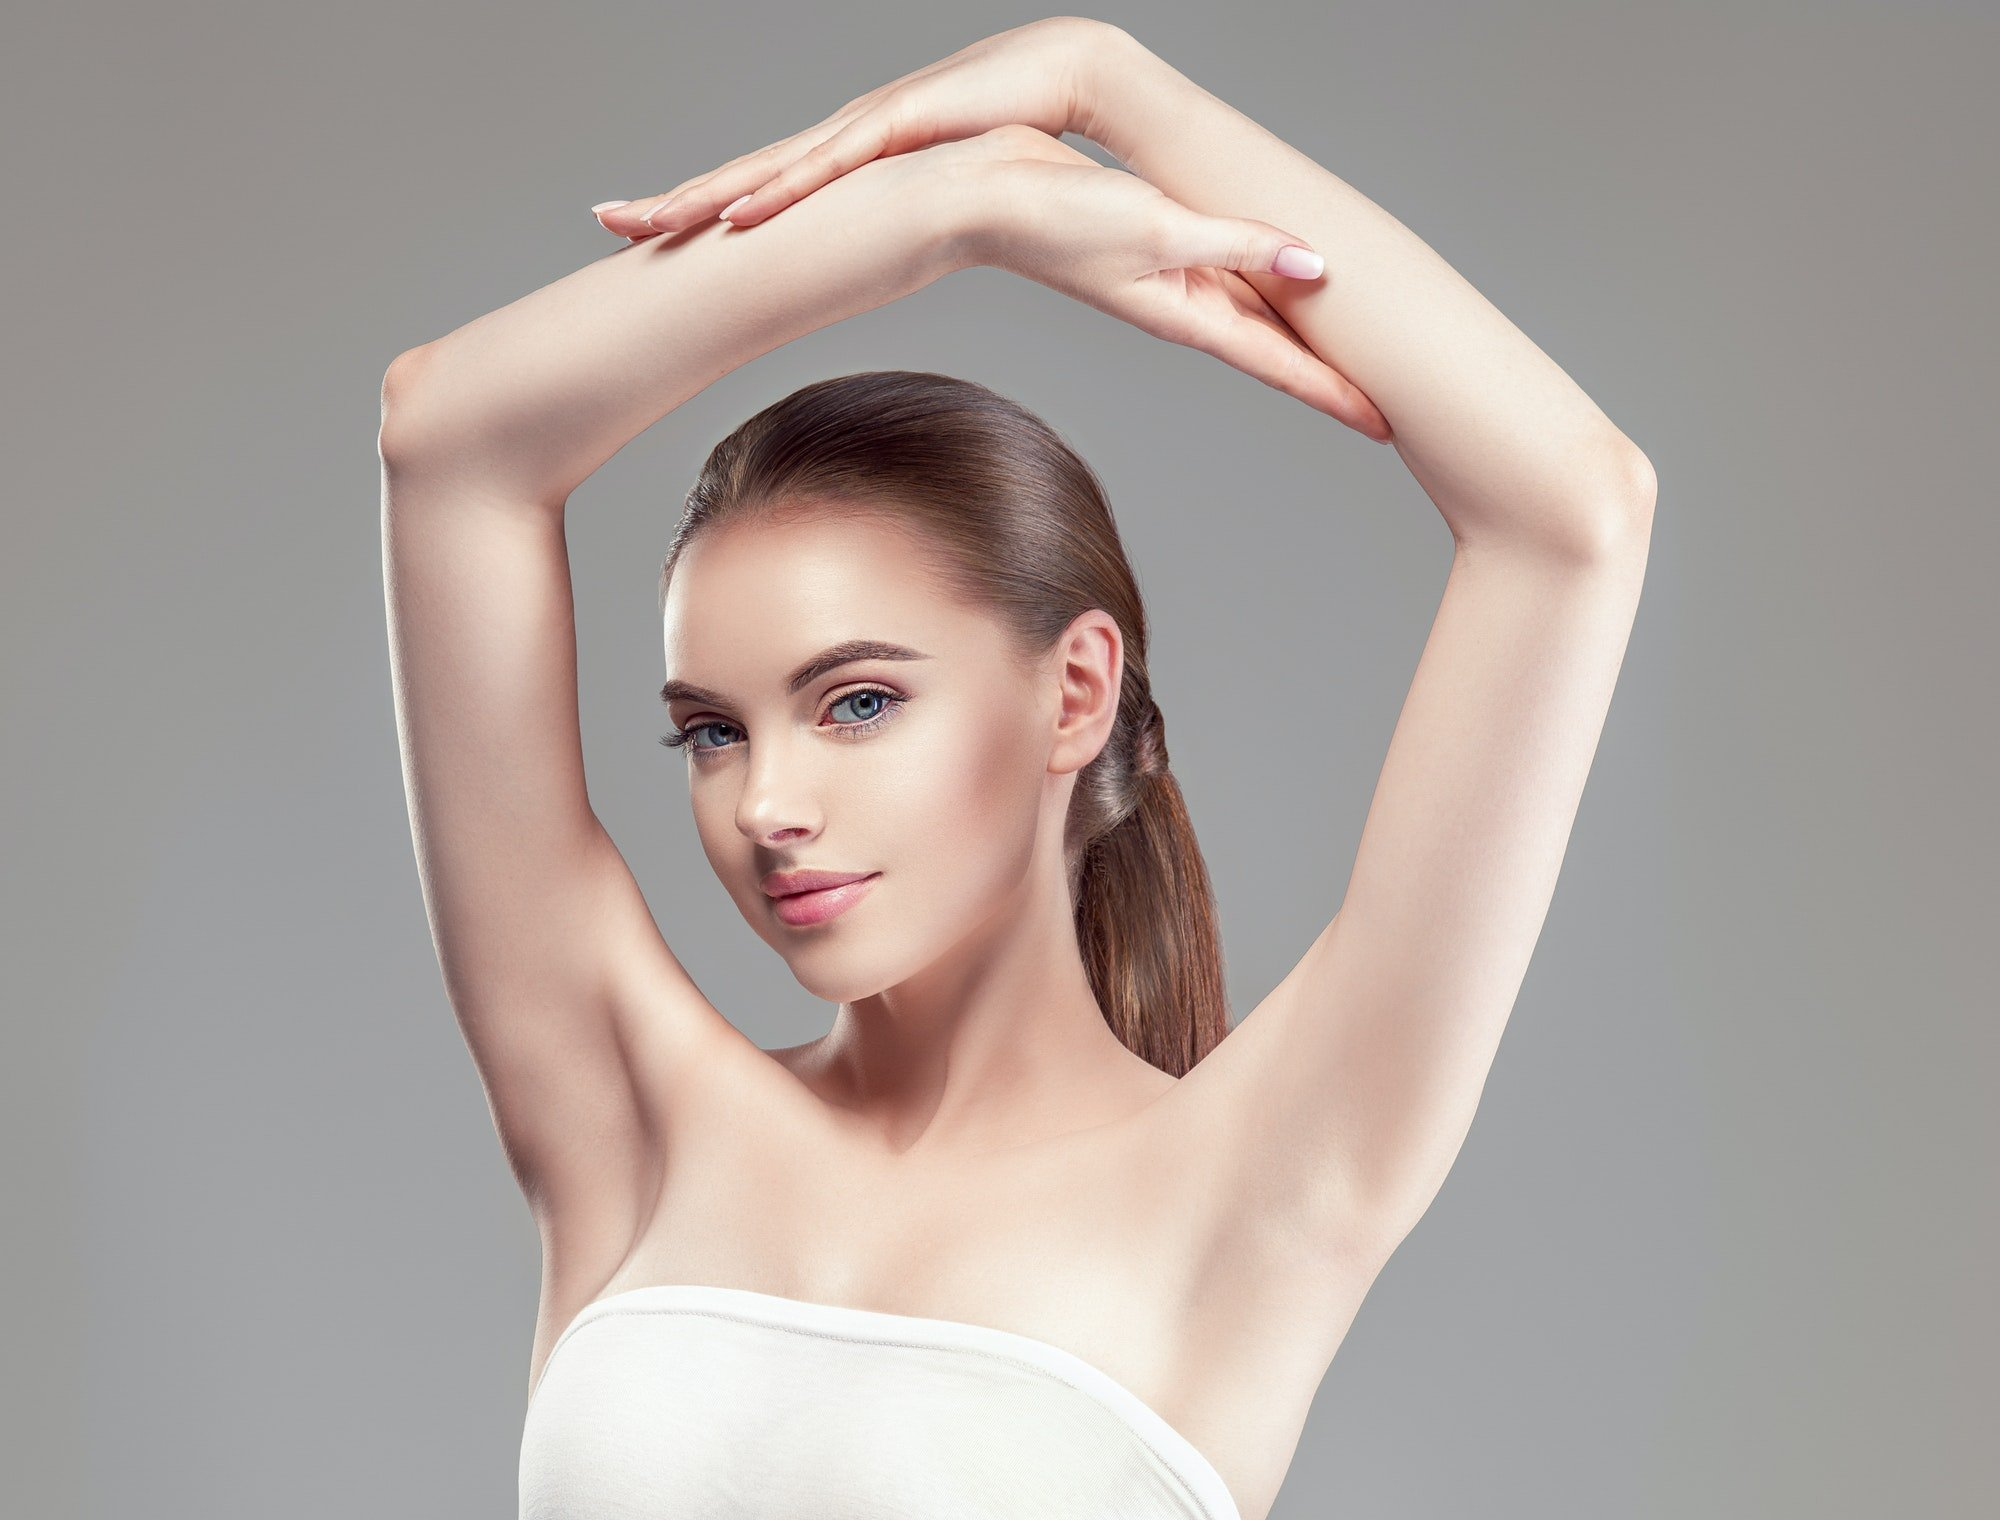 Armpit woman hand up care depilation concept